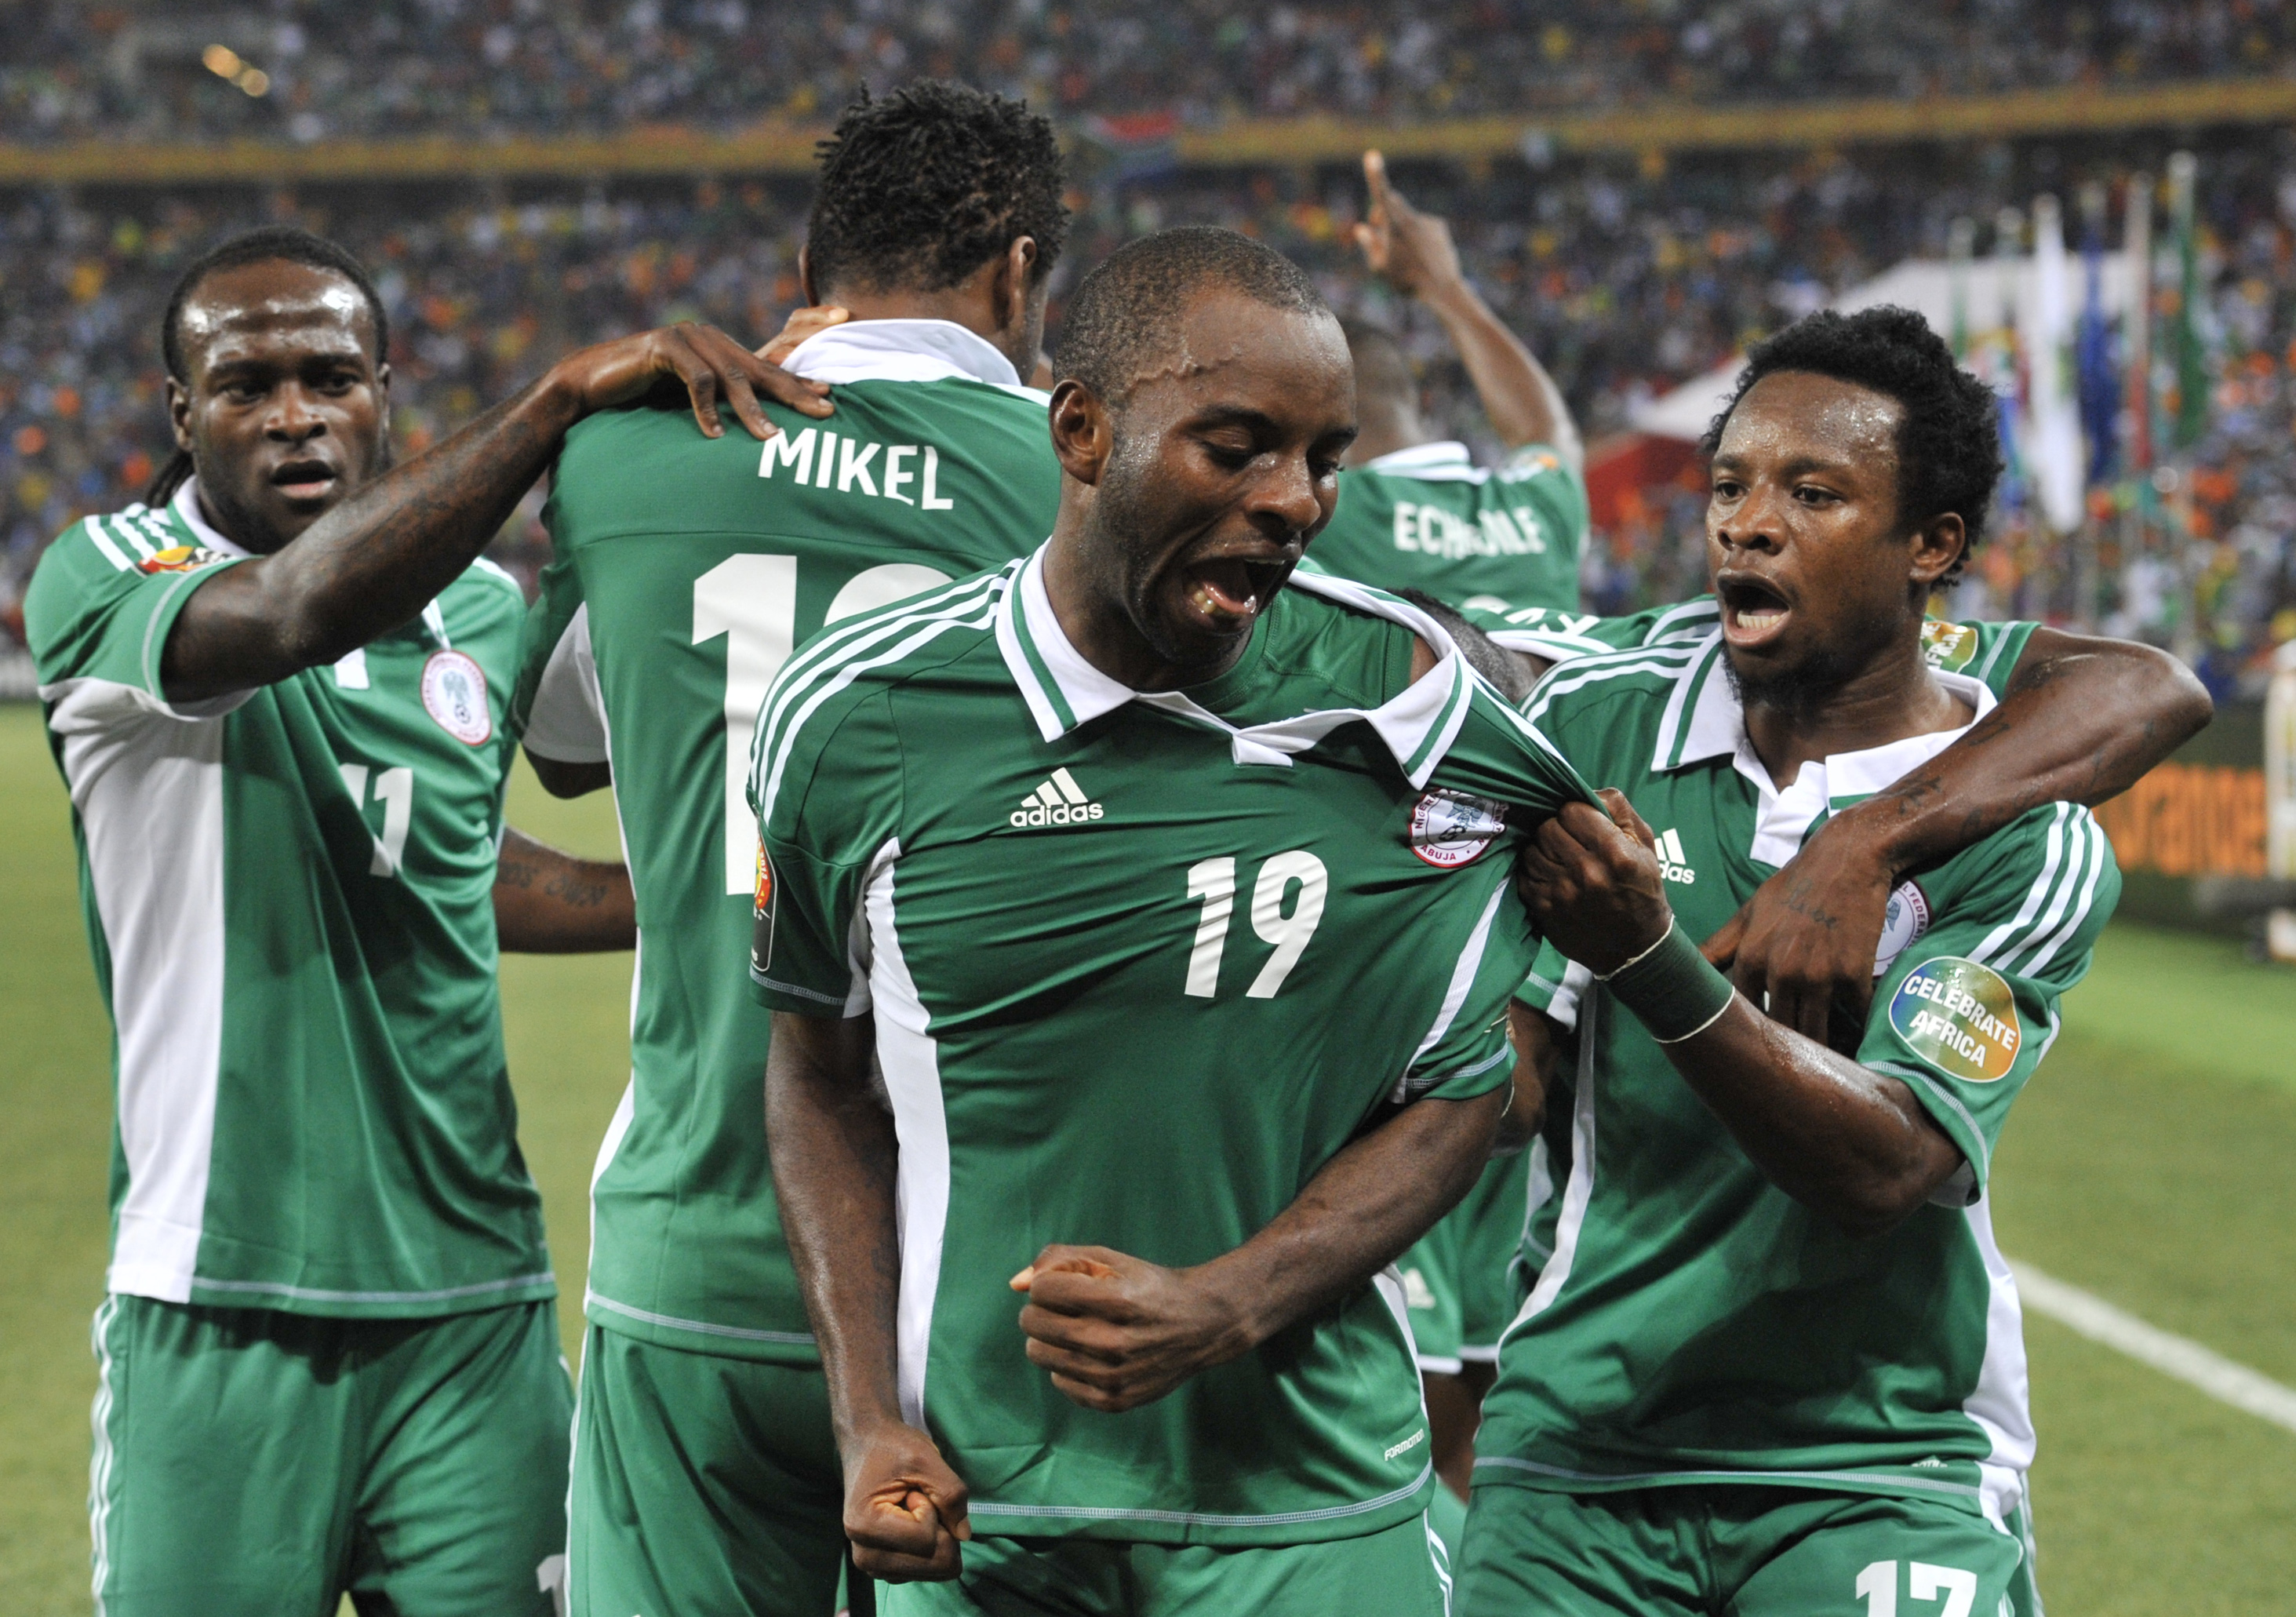 b4b1dd251e7 Nigeria Super Eagles players celebrate victory. As the saying ...